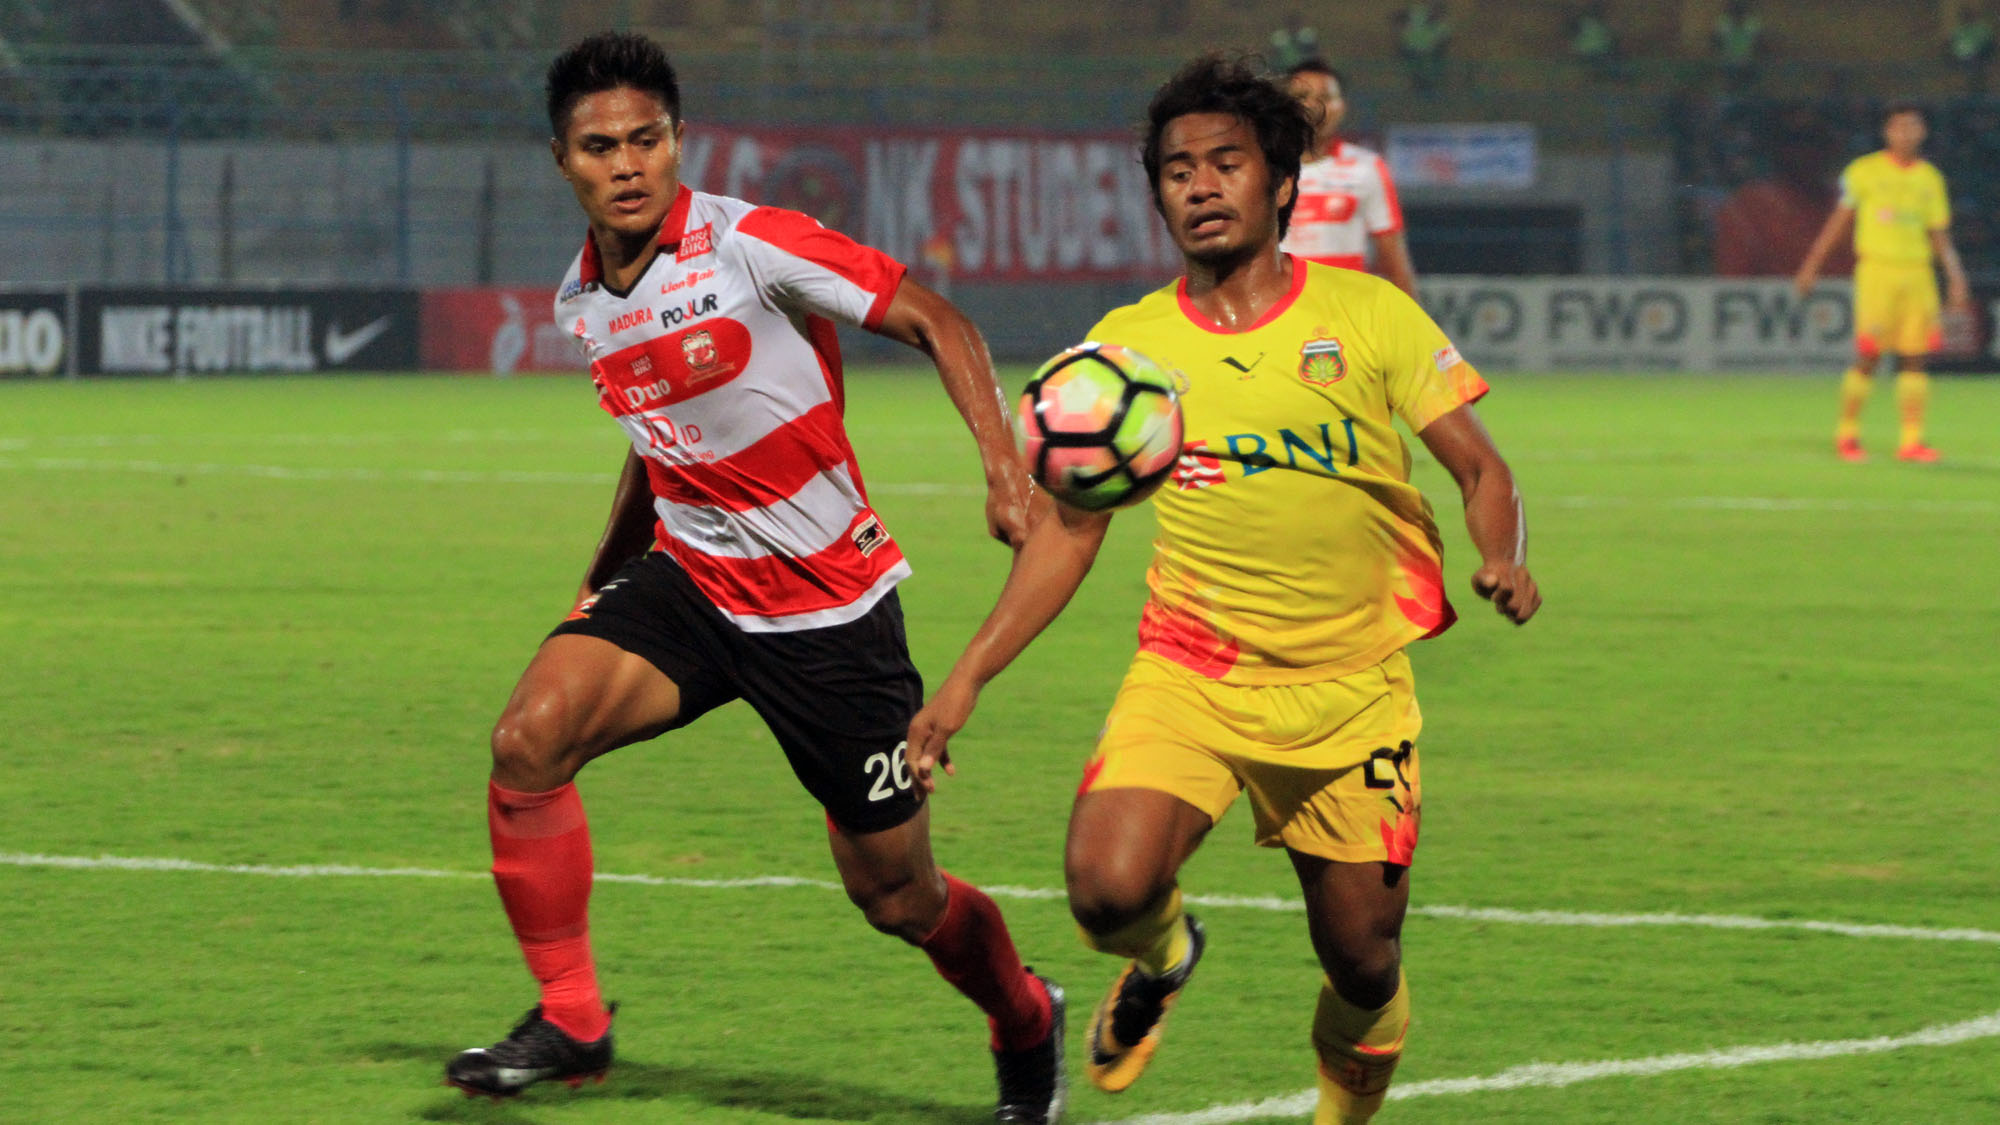 Madura United: Evan's Negotiations With Selangor Went On For A Month